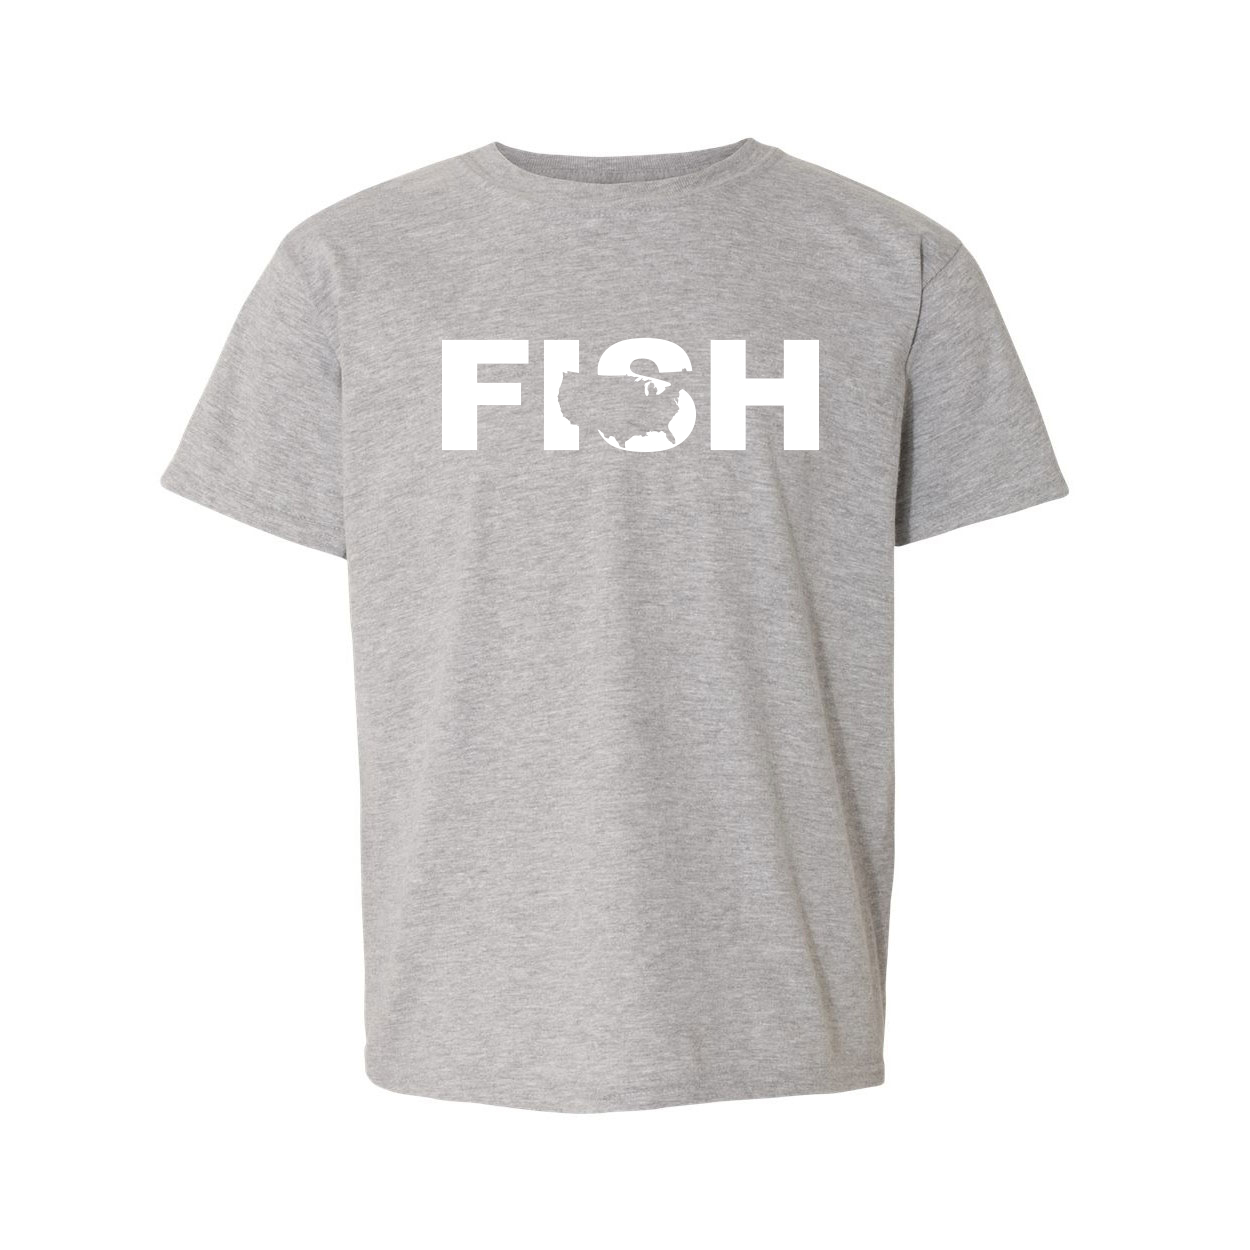 Fish United States Classic Youth T-Shirt Gray (White Logo)